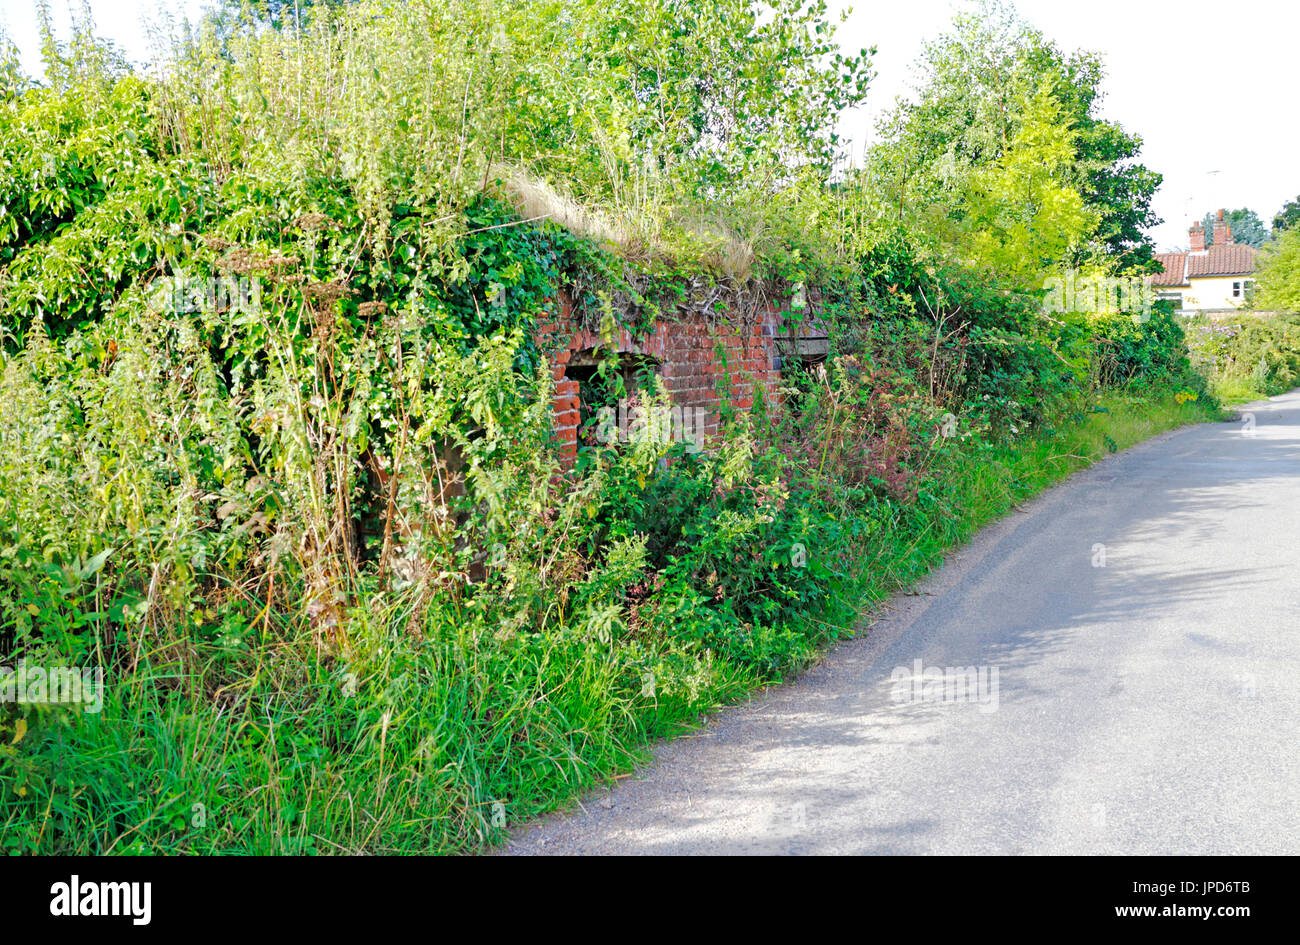 A view of the brick base remains of the old watermill at Briggate, near North Walsham, Norfolk, England, United Kingdom. - Stock Image